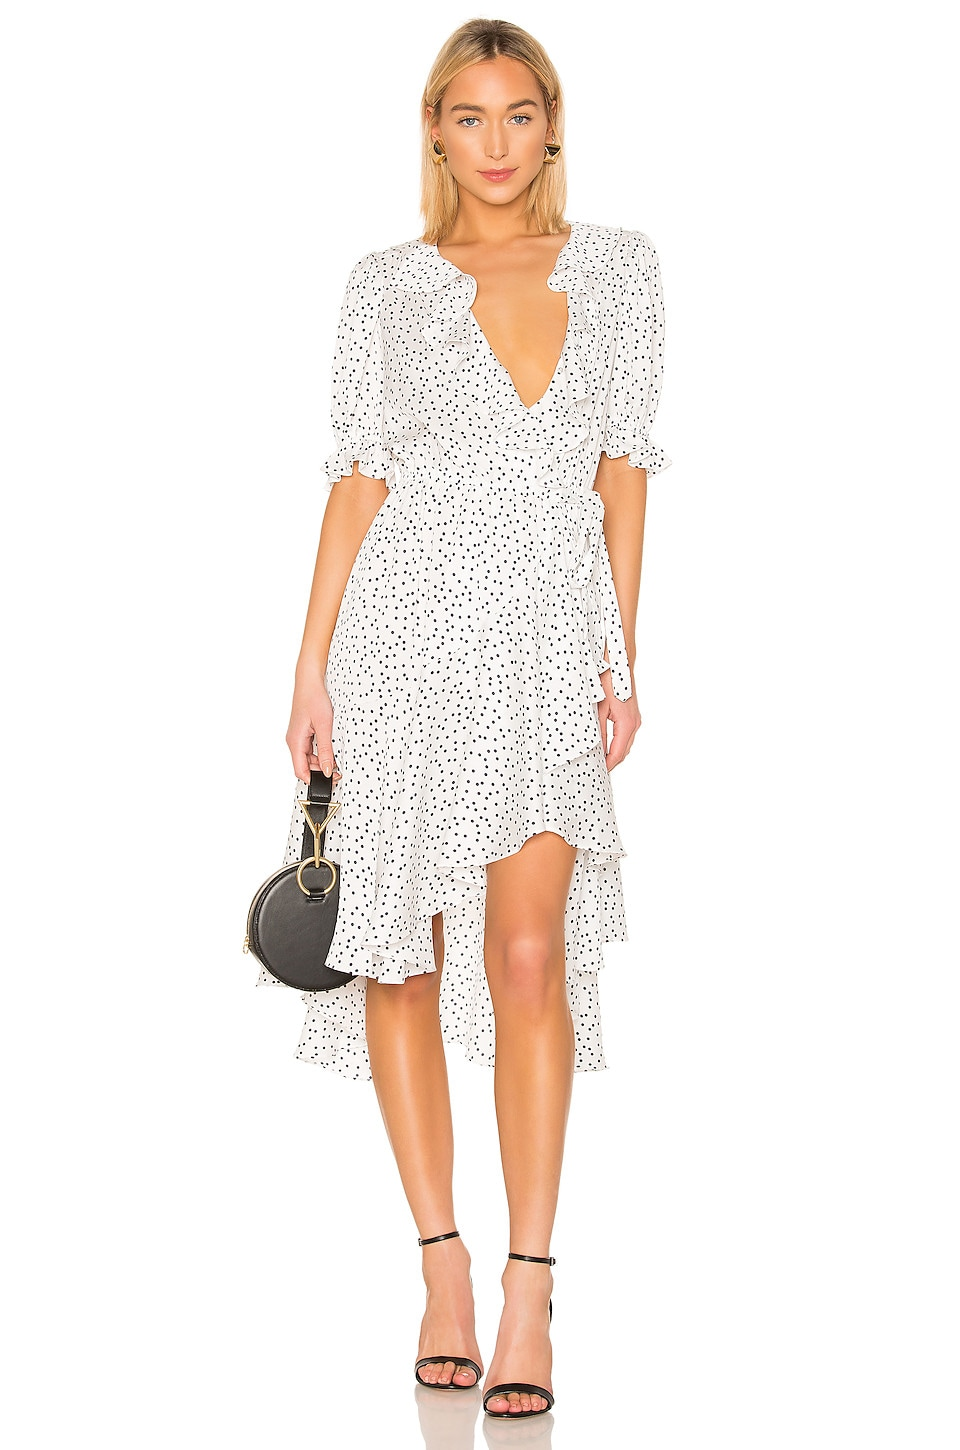 ICONS Objects of Devotion Cha Cha Wrap Dress in White & Navy Dot